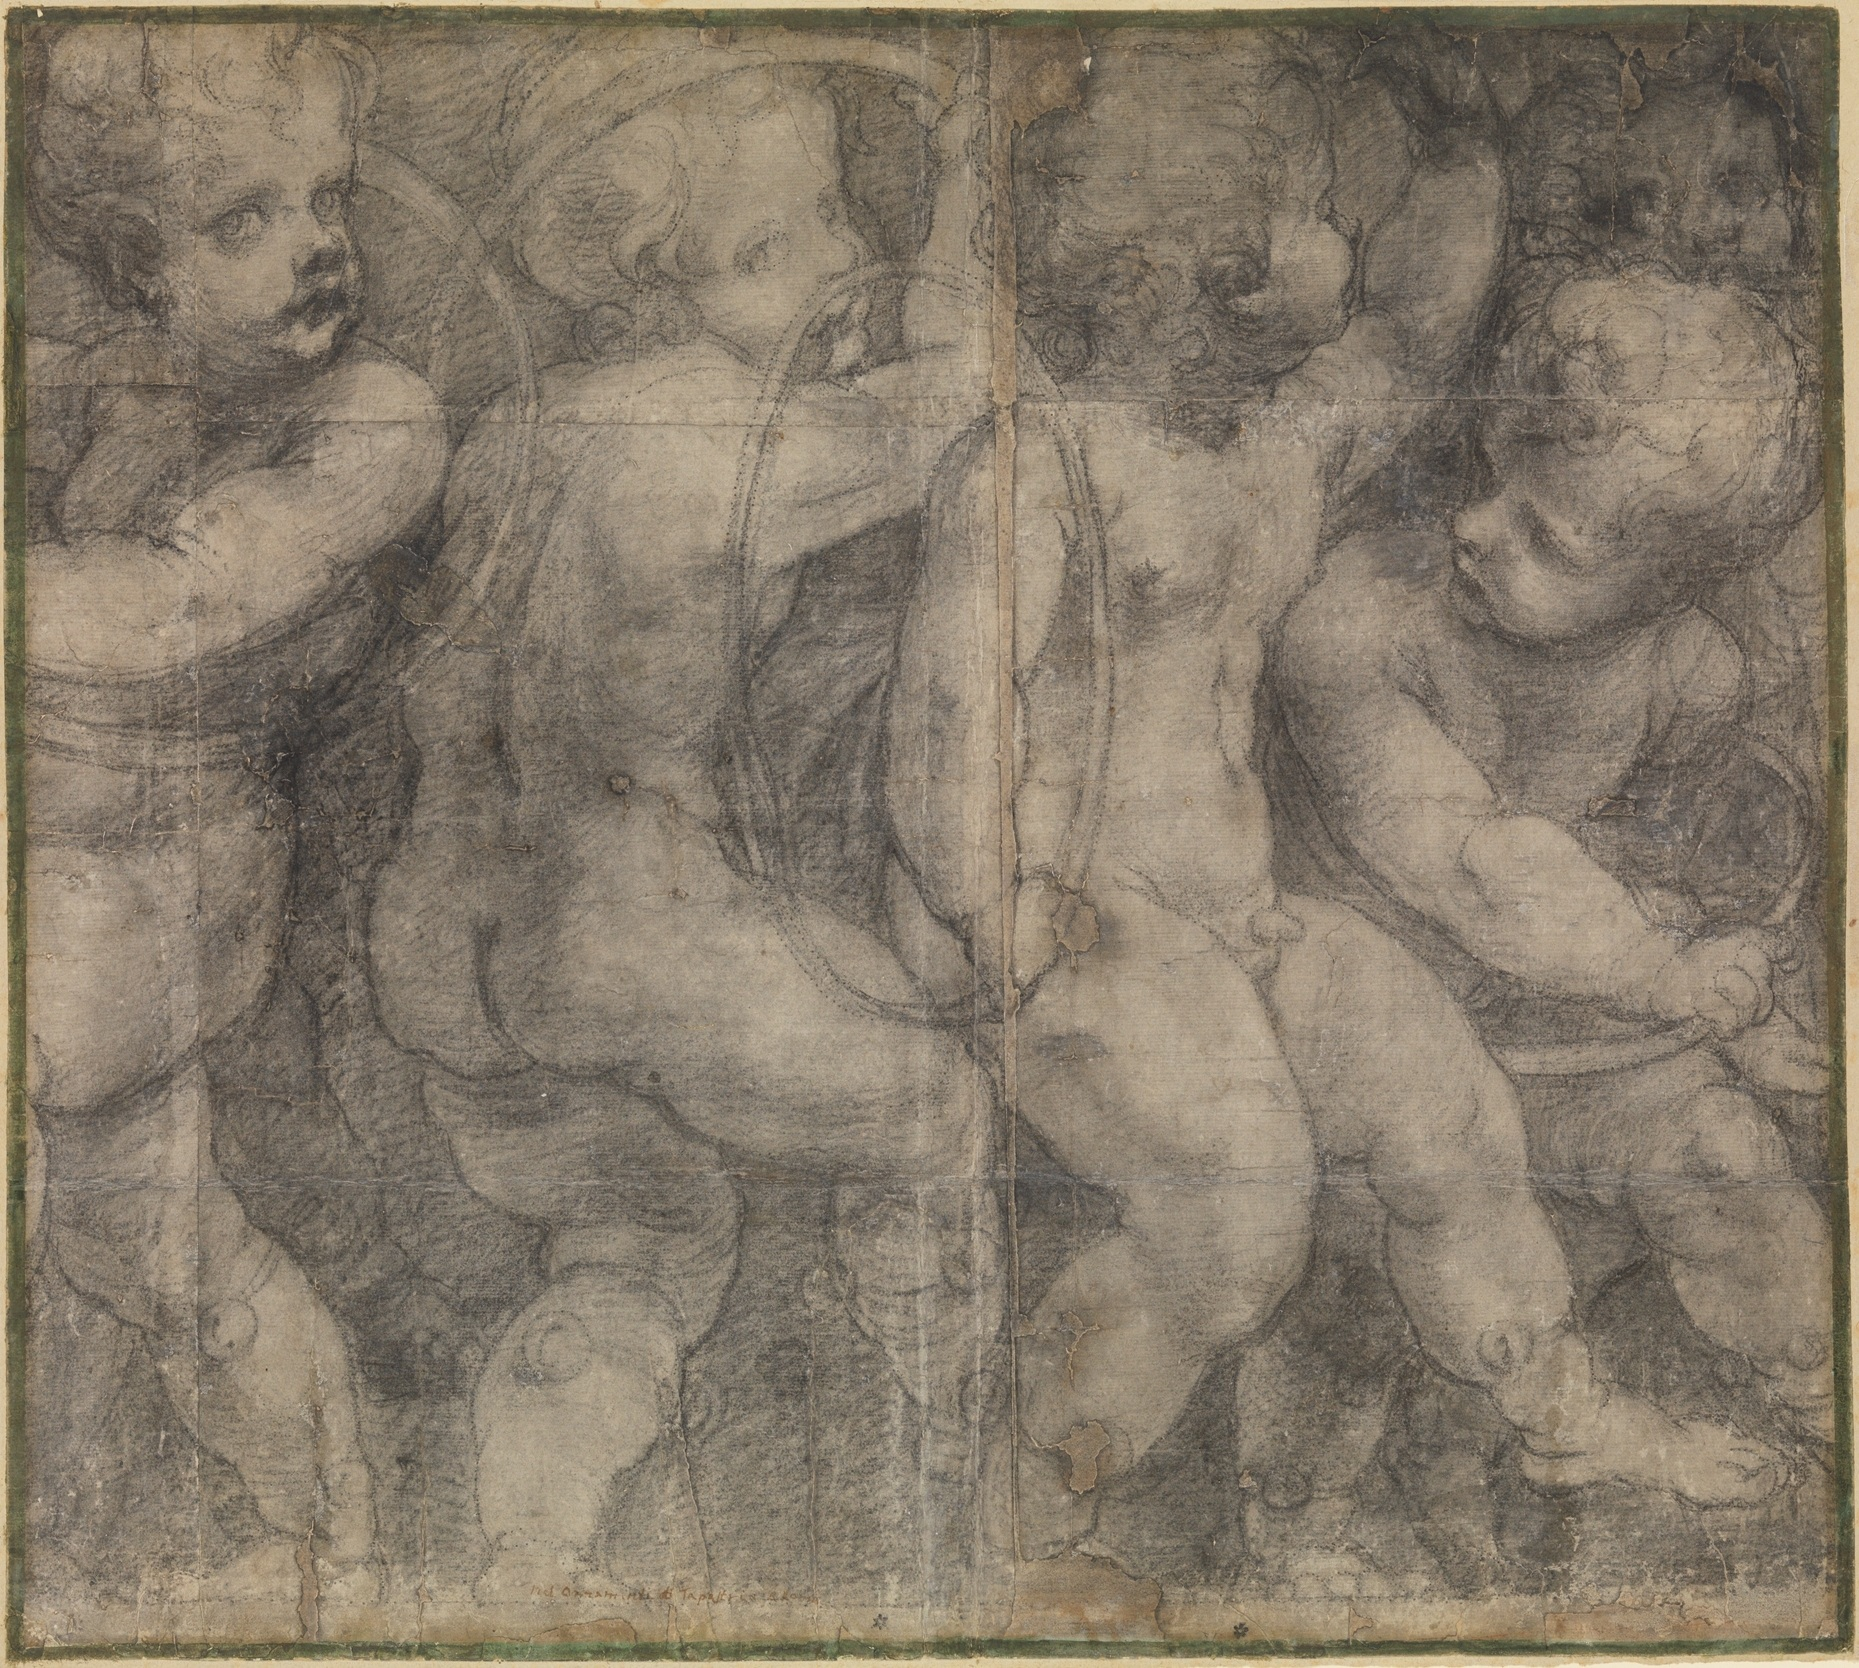 Fig. 1. Michelangelo Anselmi,  Putti Playing with Hoops , black chalk with outlines pricked for transfer, 22 × 24 13/16 inches (55.9 × 63 cm), Metropolitan Museum of Art, New York